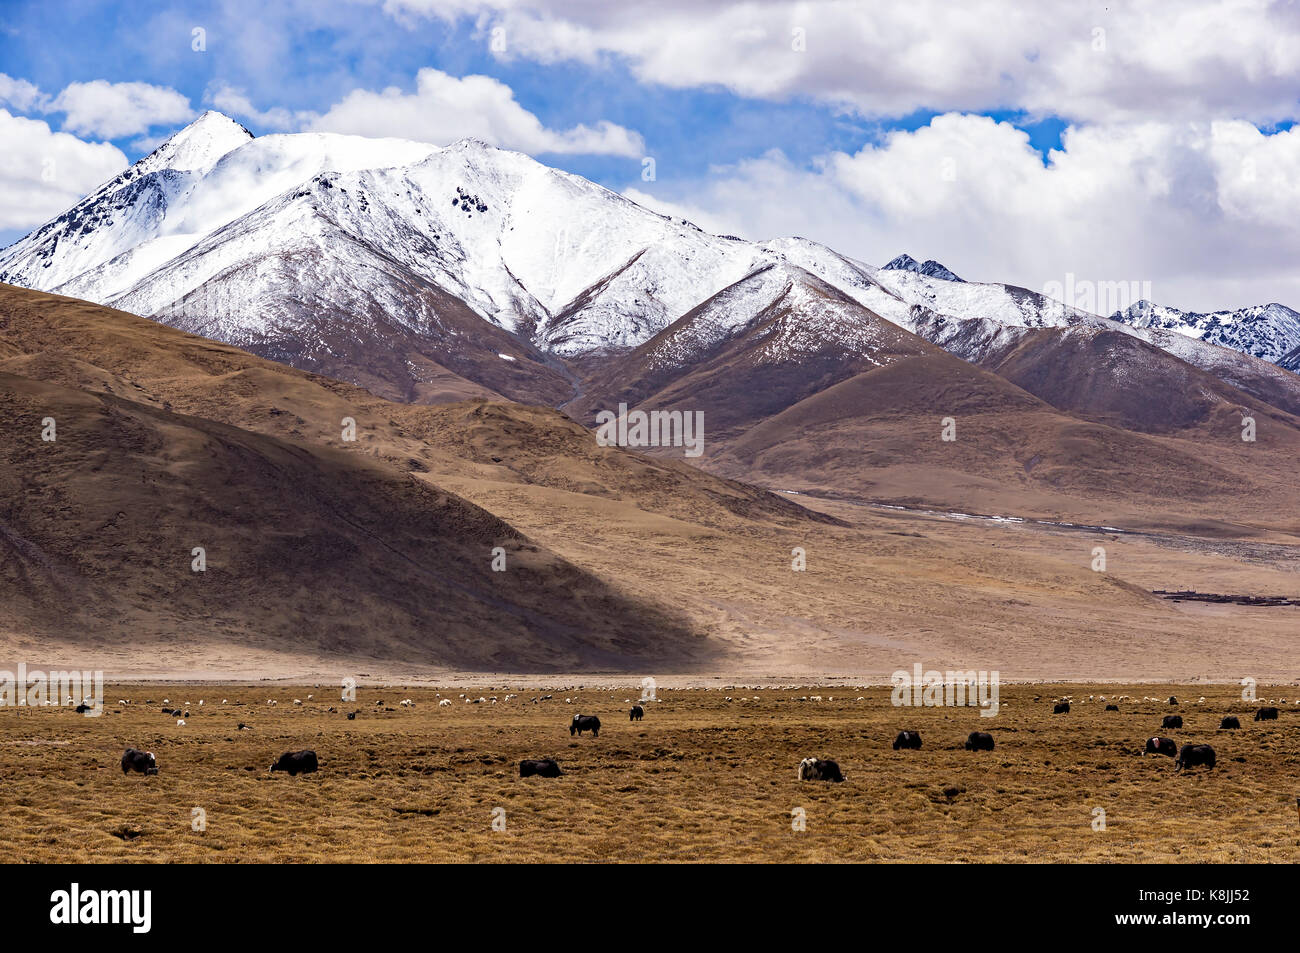 Typical mountain landscape with tibetan yaks - Tibet - Stock Image